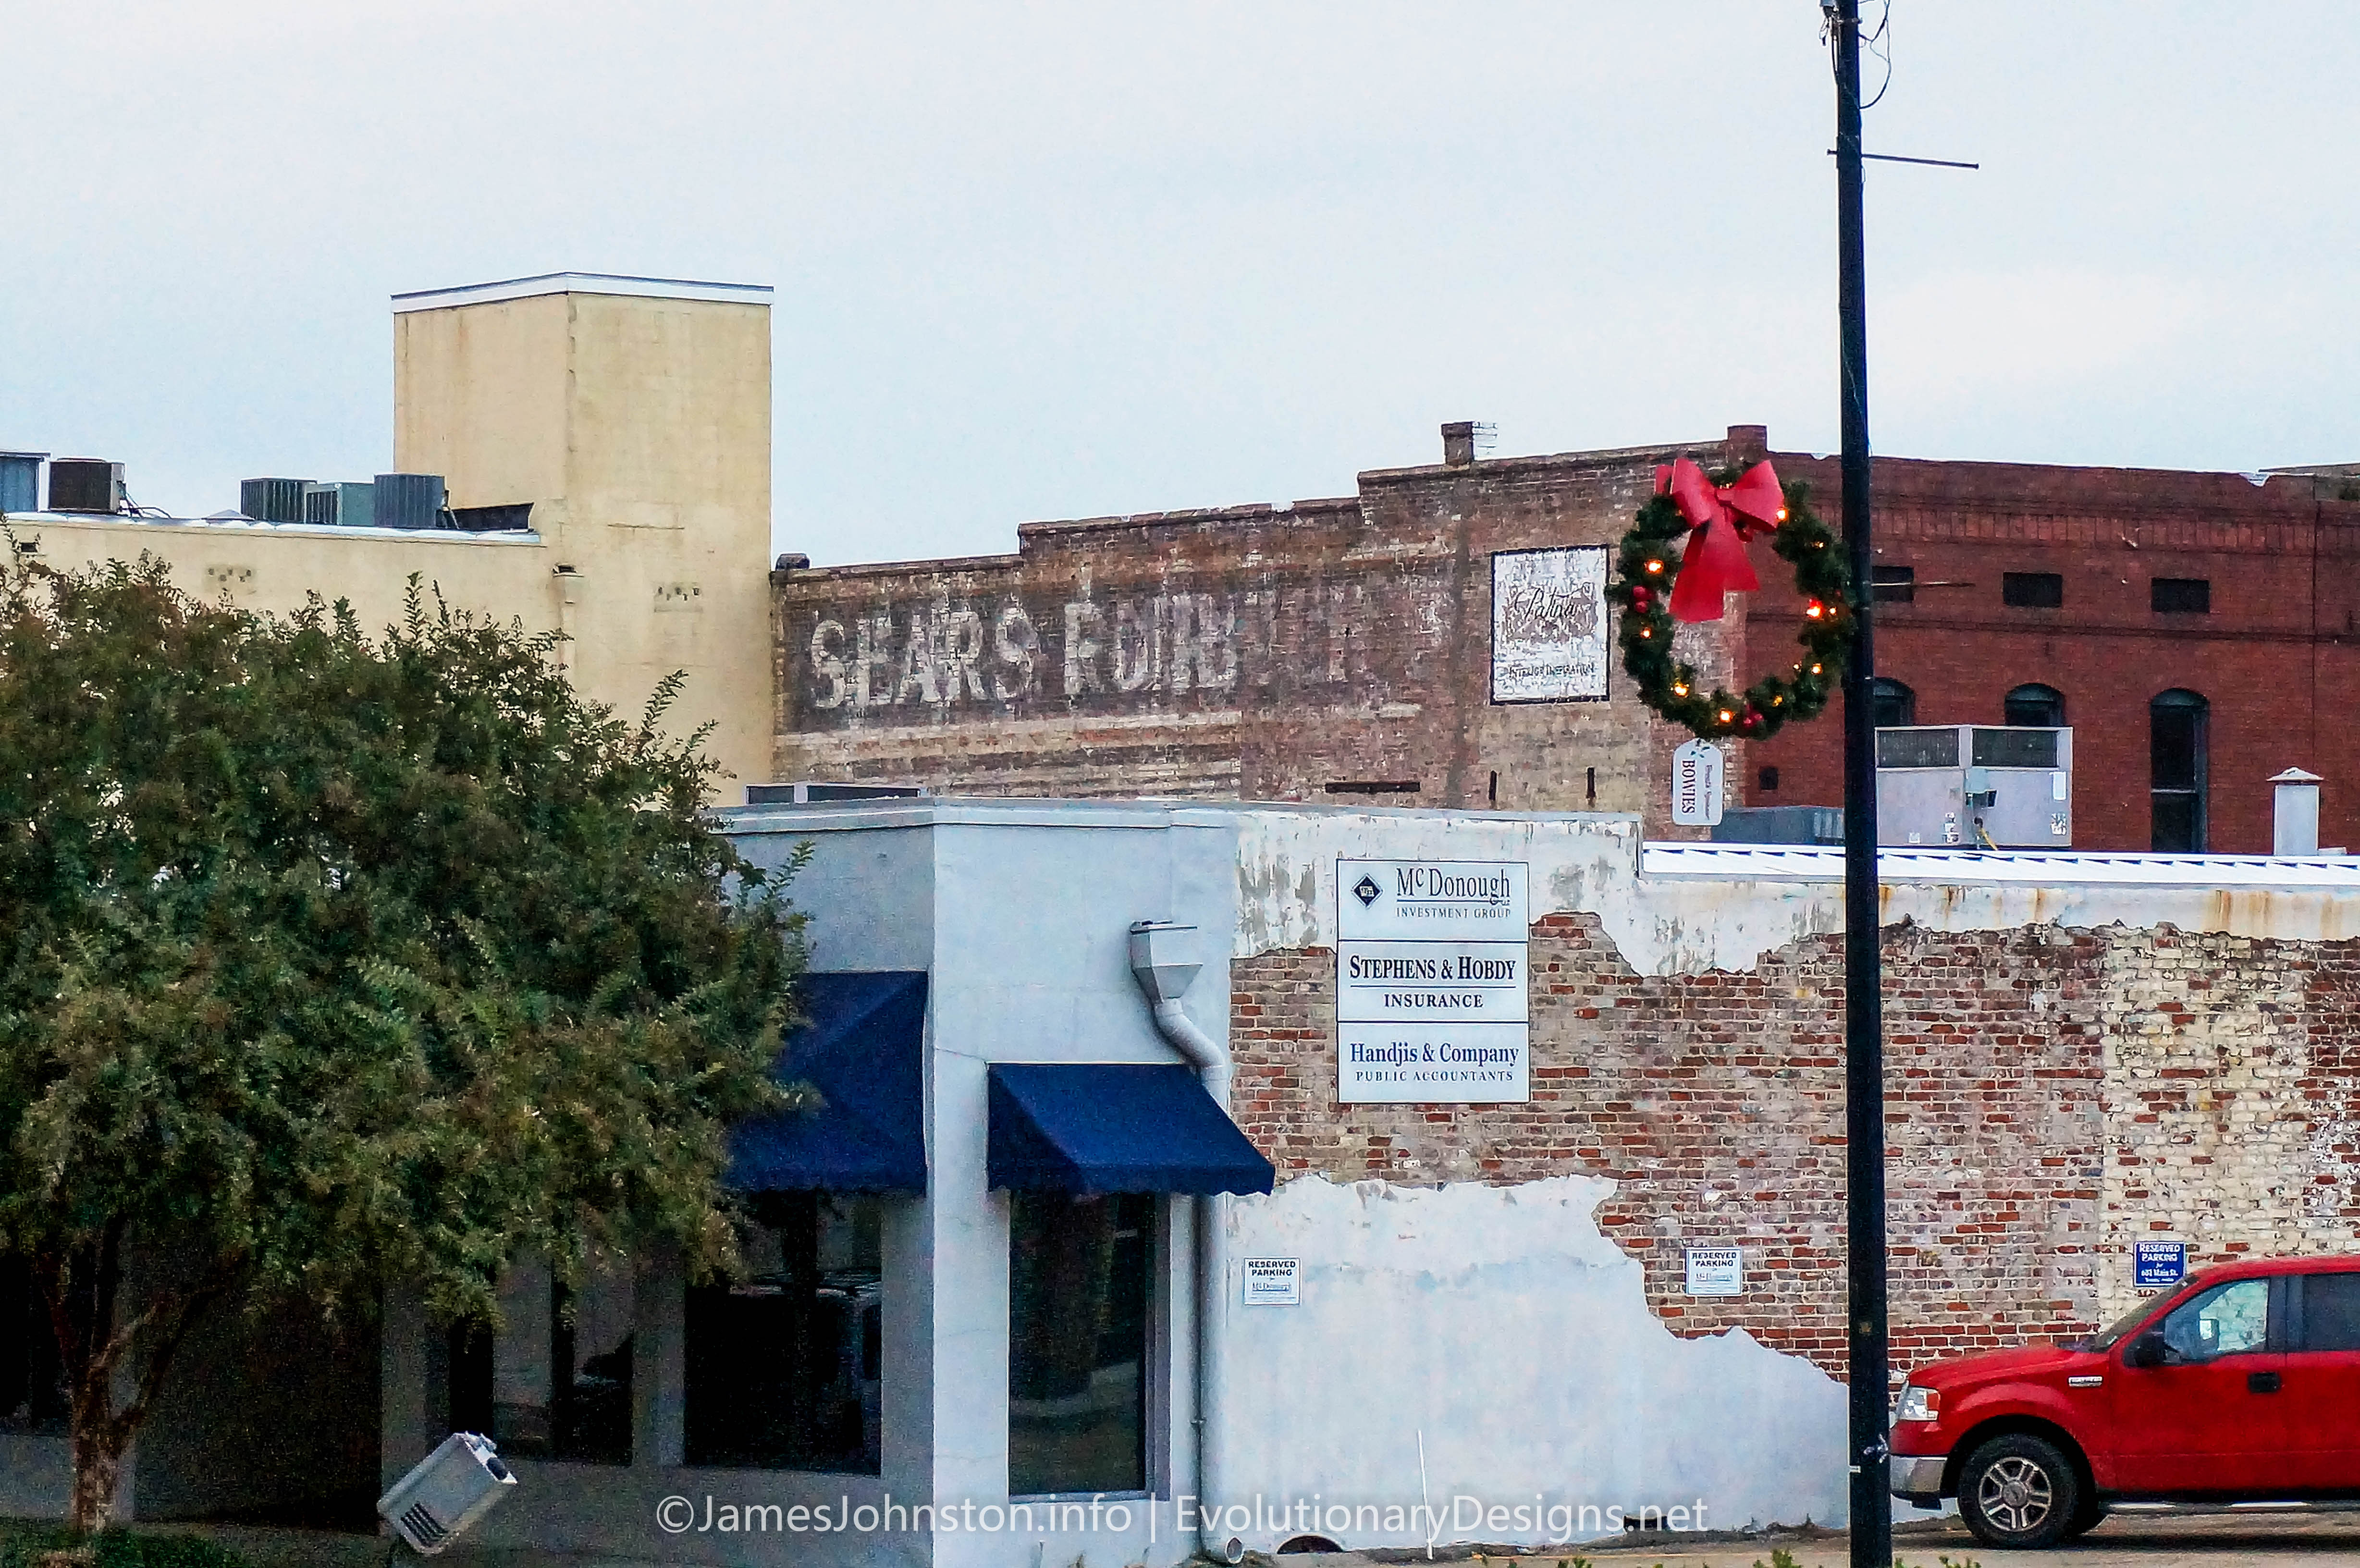 Sears Brothers Ghost Signs in Natchez, Mississippi